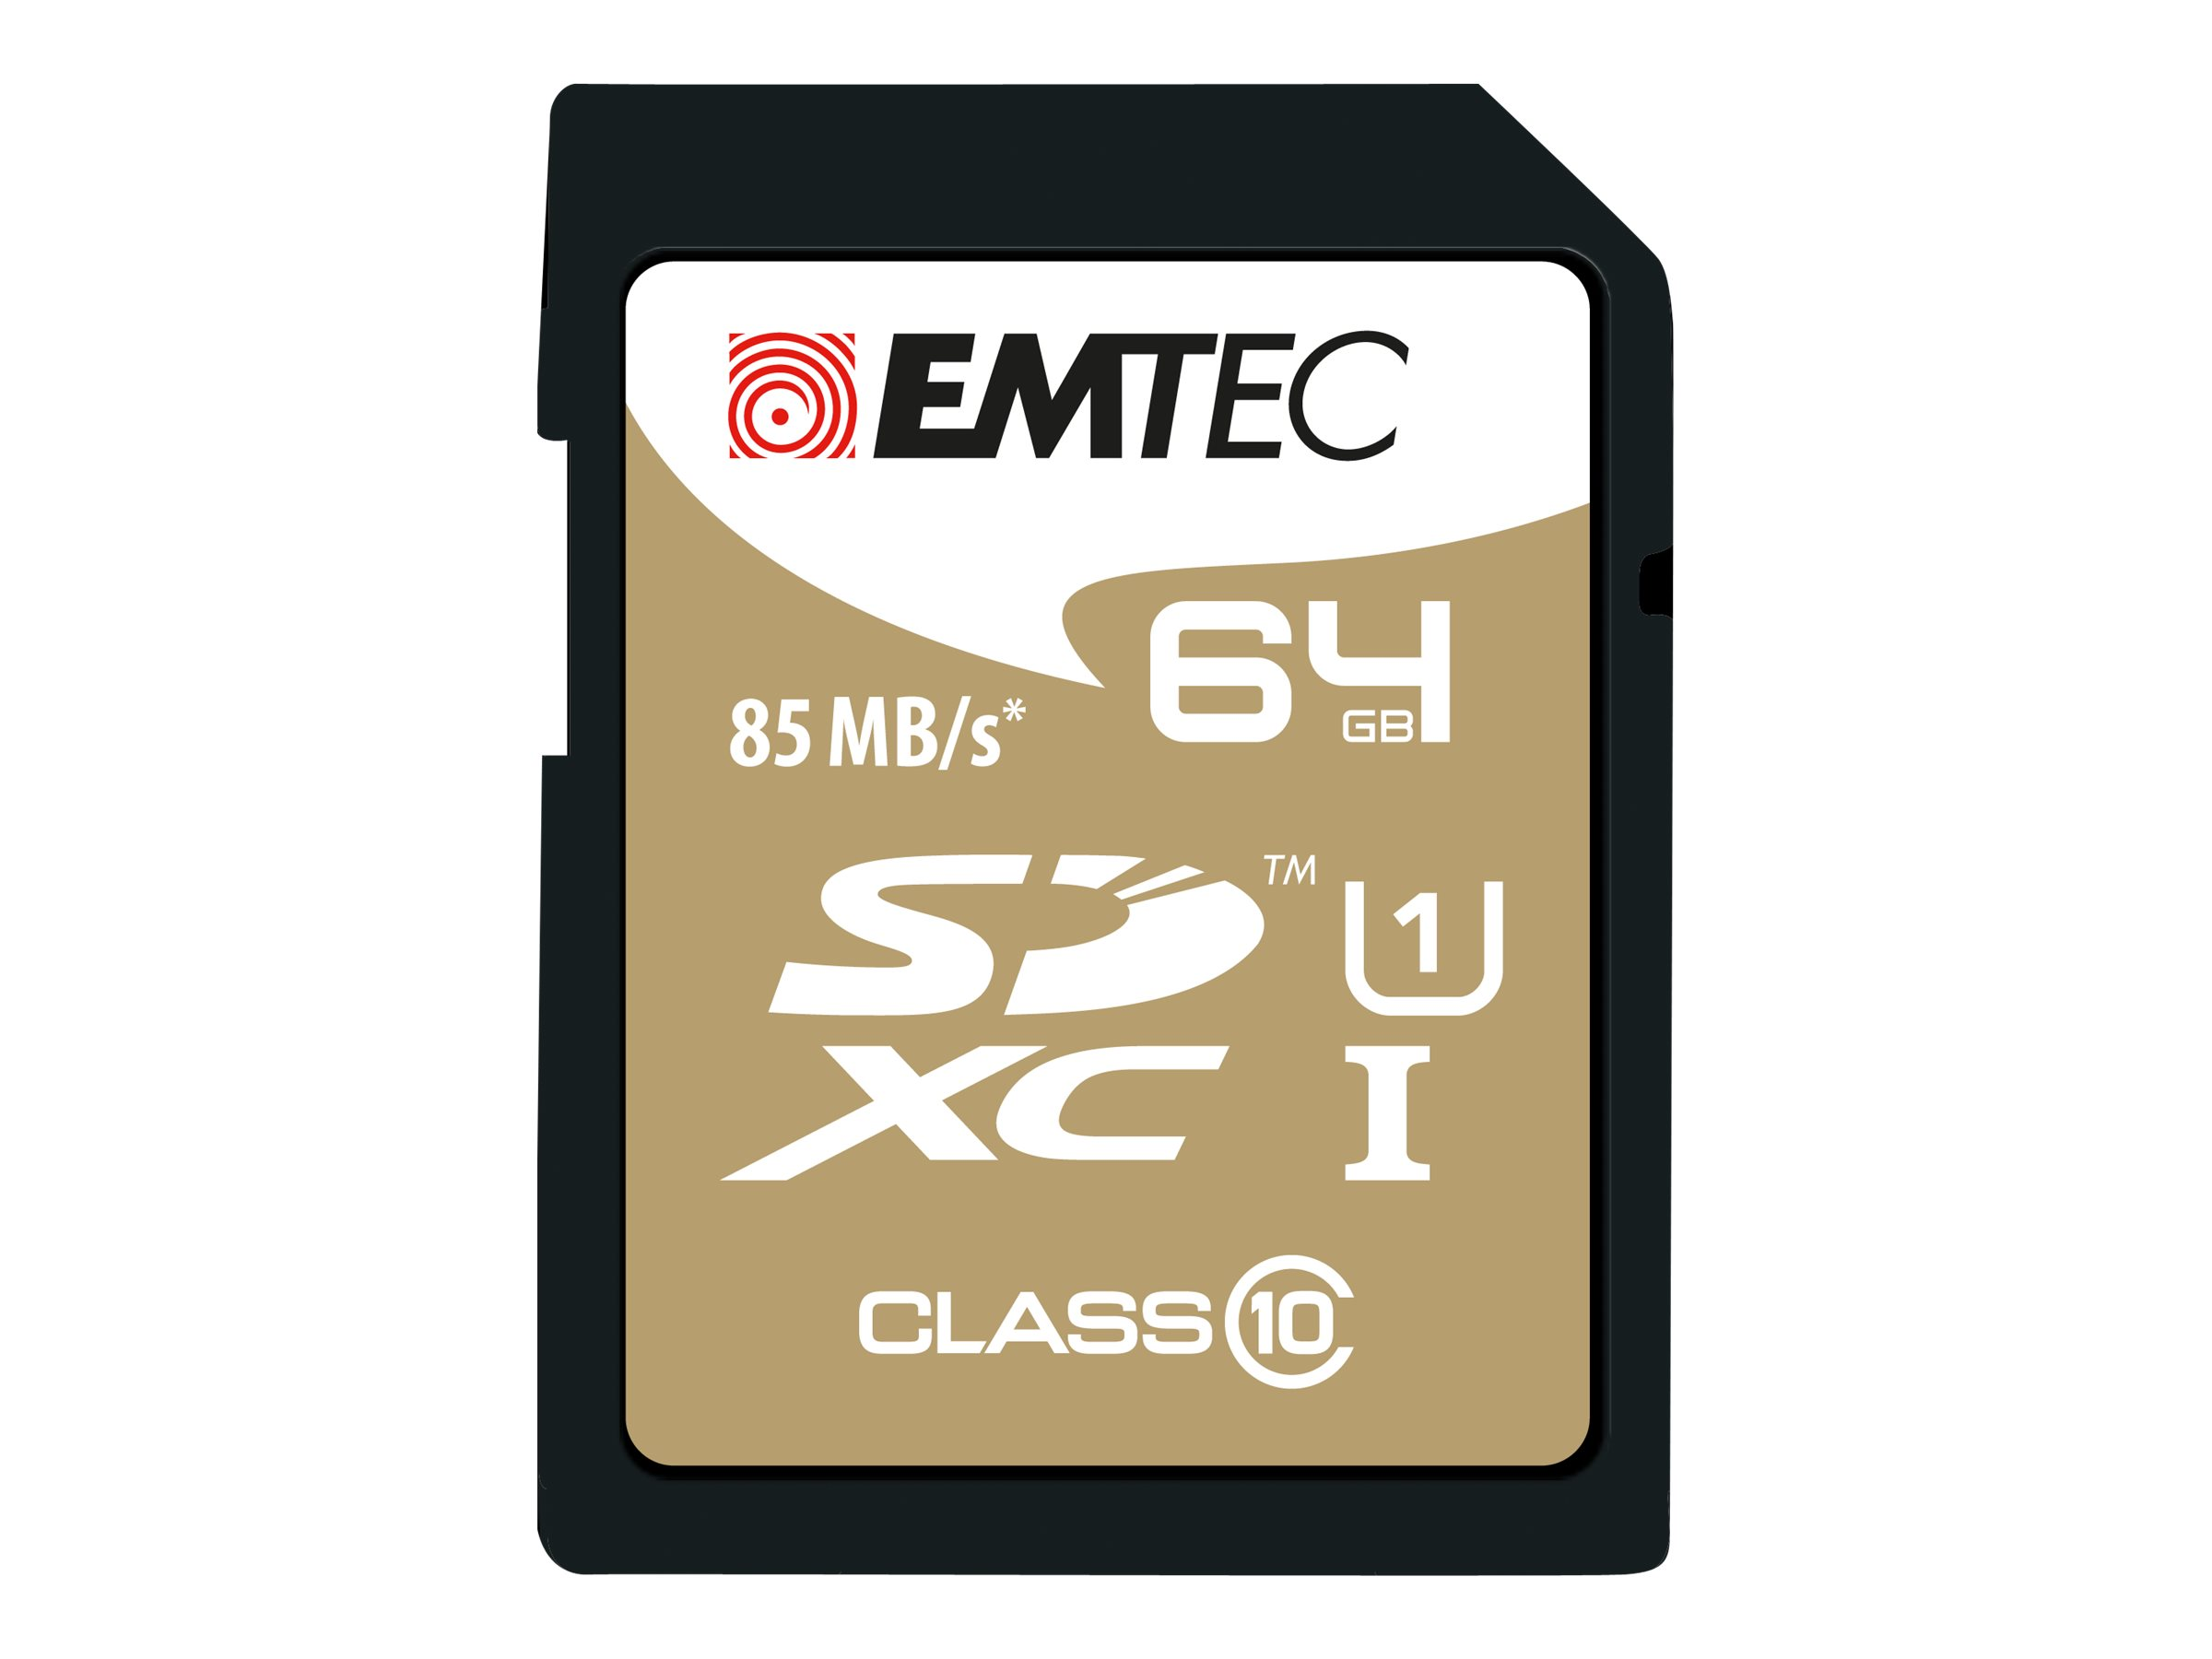 EMTEC Gold+ - Flash-Speicherkarte - 64 GB - Class 10 - SDXC